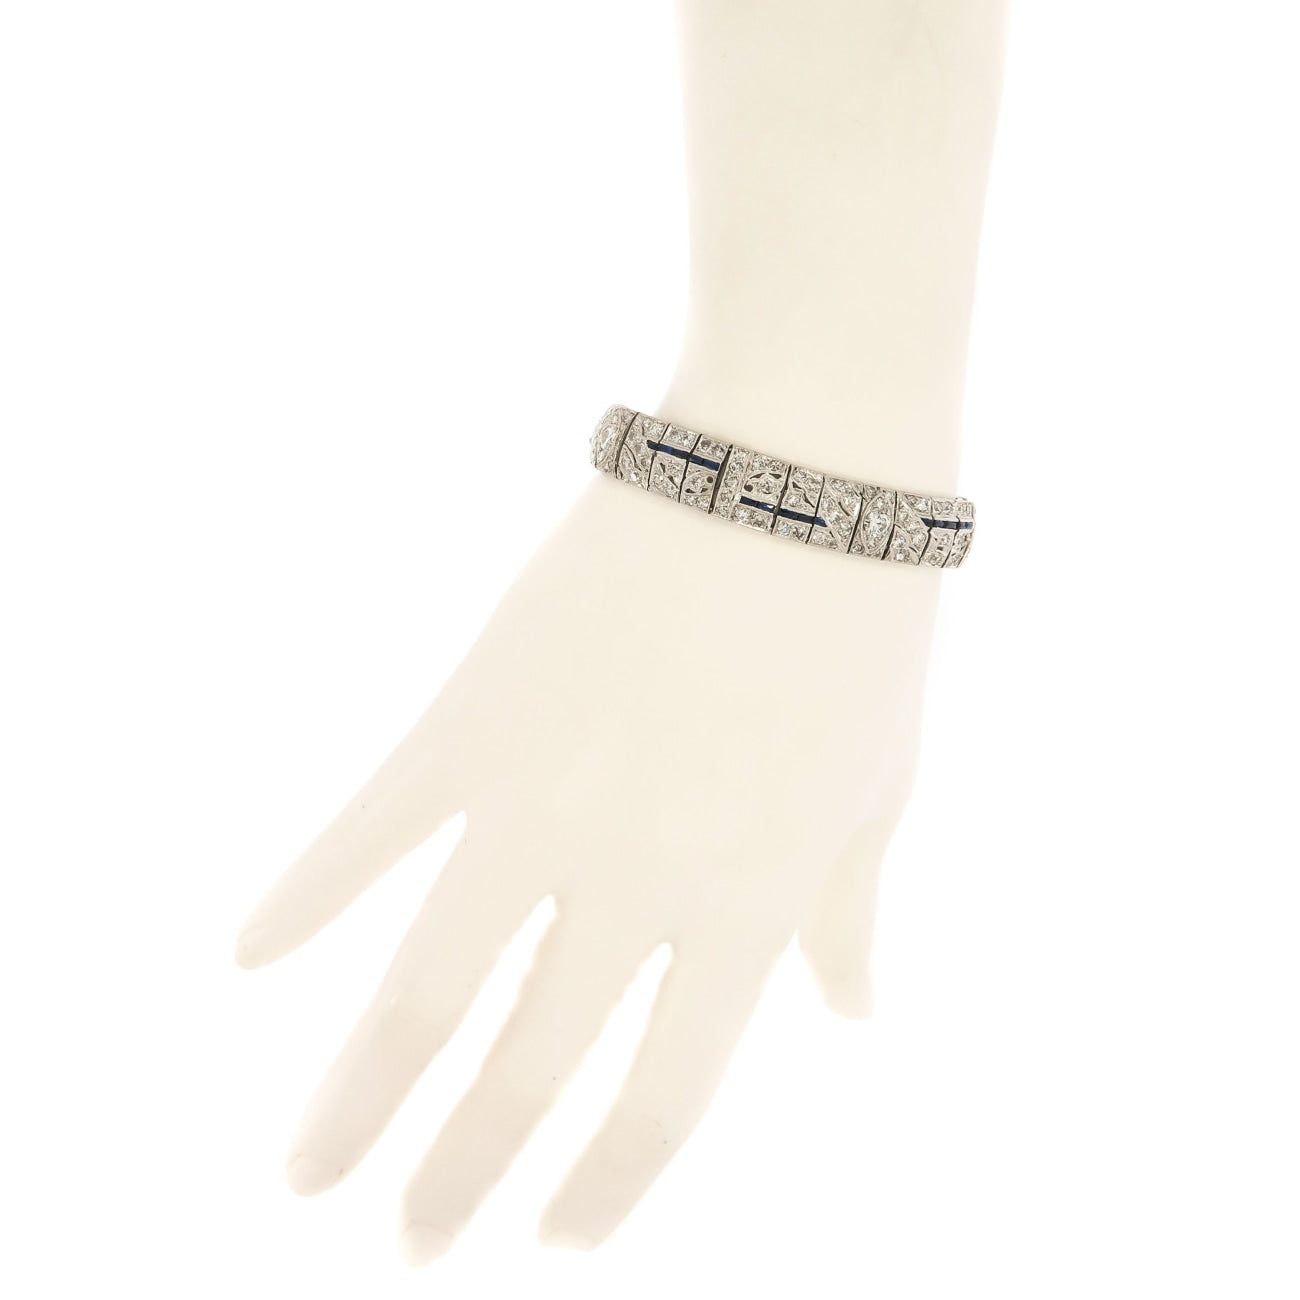 Estate Jewelry Estate Jewelry - Diamond and Sapphire Platinum Bracelet | Manfredi Jewels